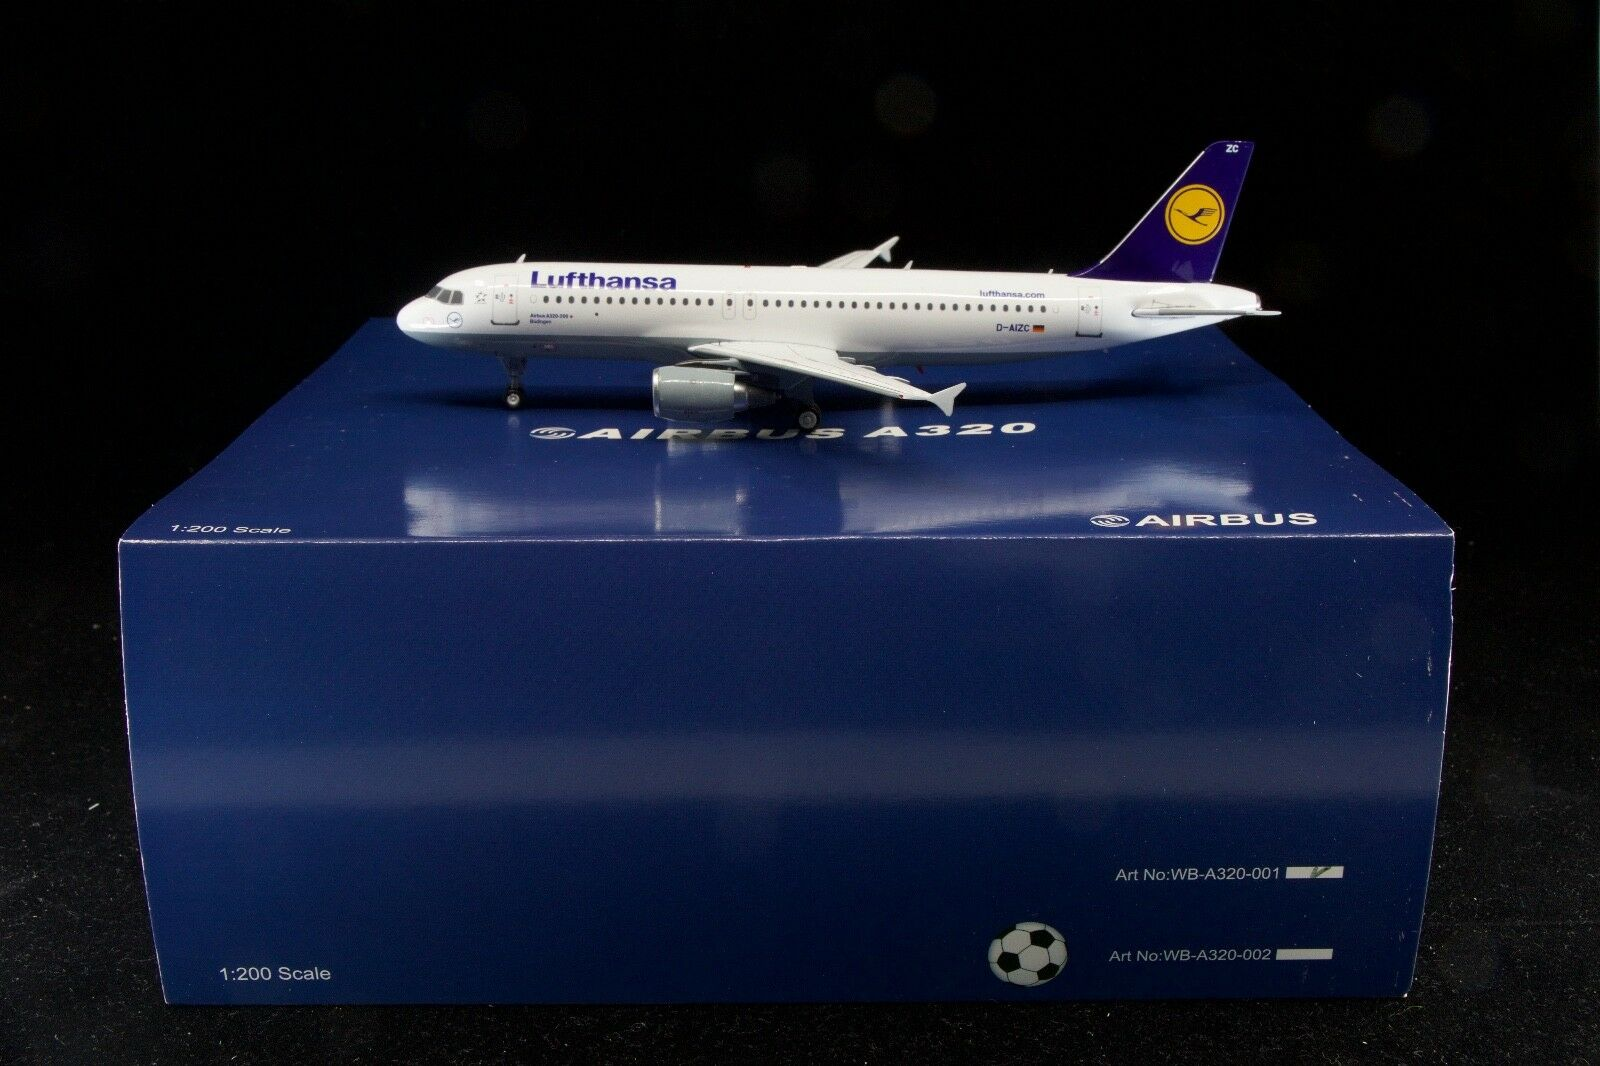 Inflight200 bianca Box Models 1/200 Lufthansa A320-214